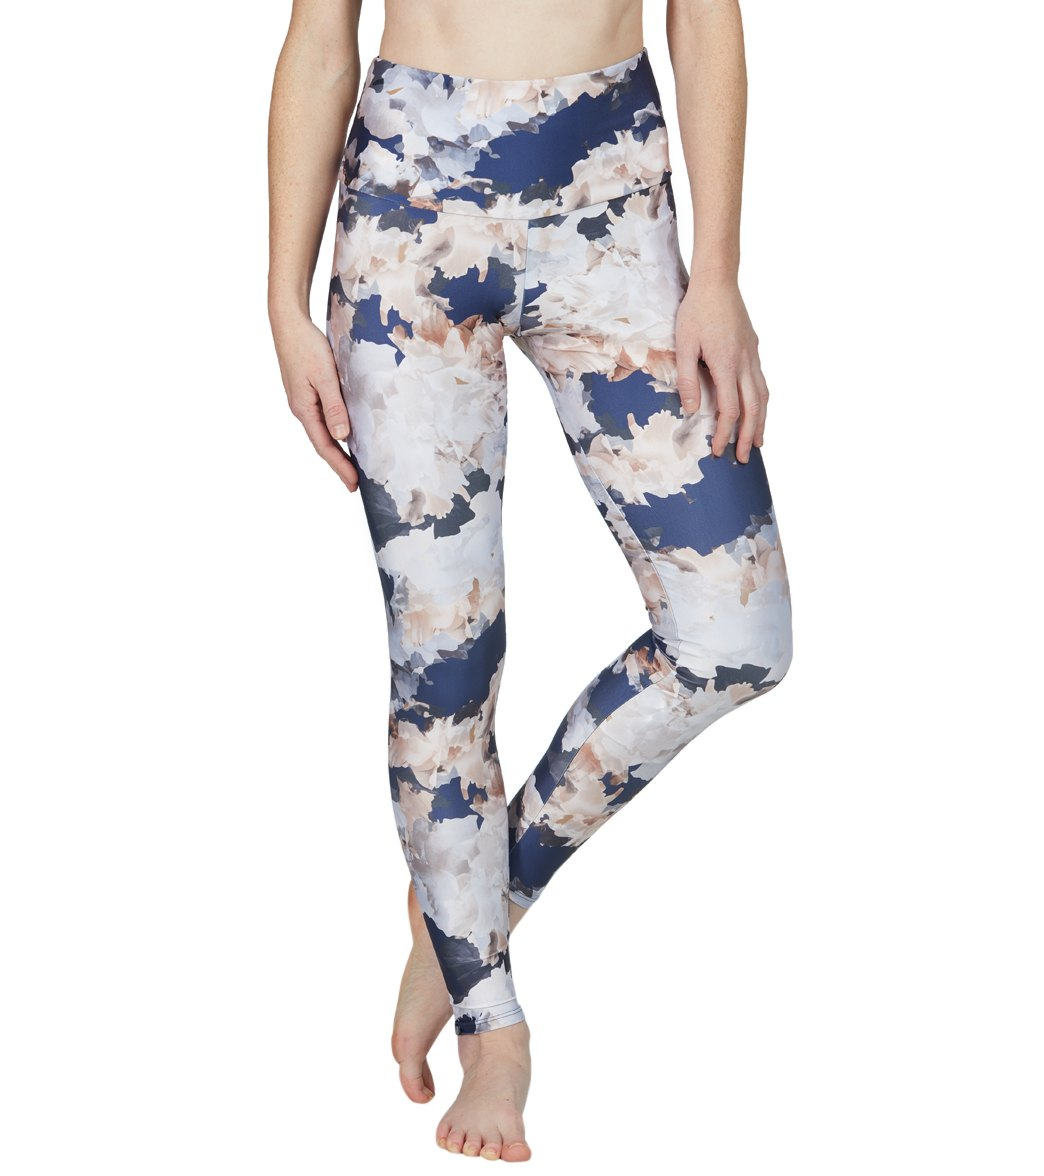 620128c2d1 Onzie High Waisted Yoga Leggings at SwimOutlet.com - Free Shipping